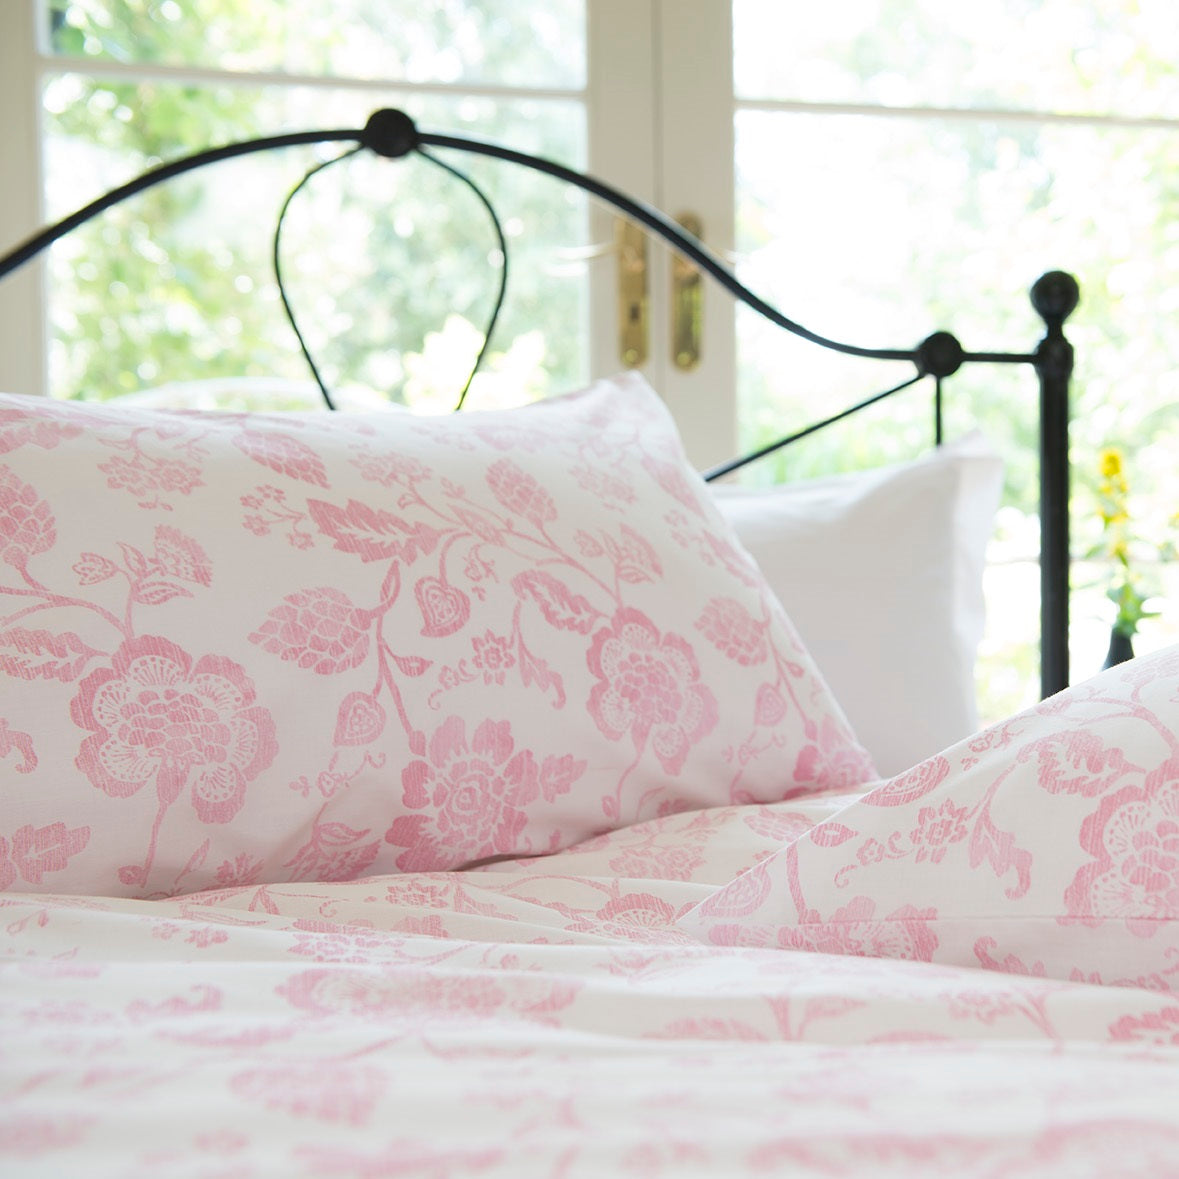 set duvet bedroom canopy pink products the decor blush crane mariposa cover inspiration classic and bedding